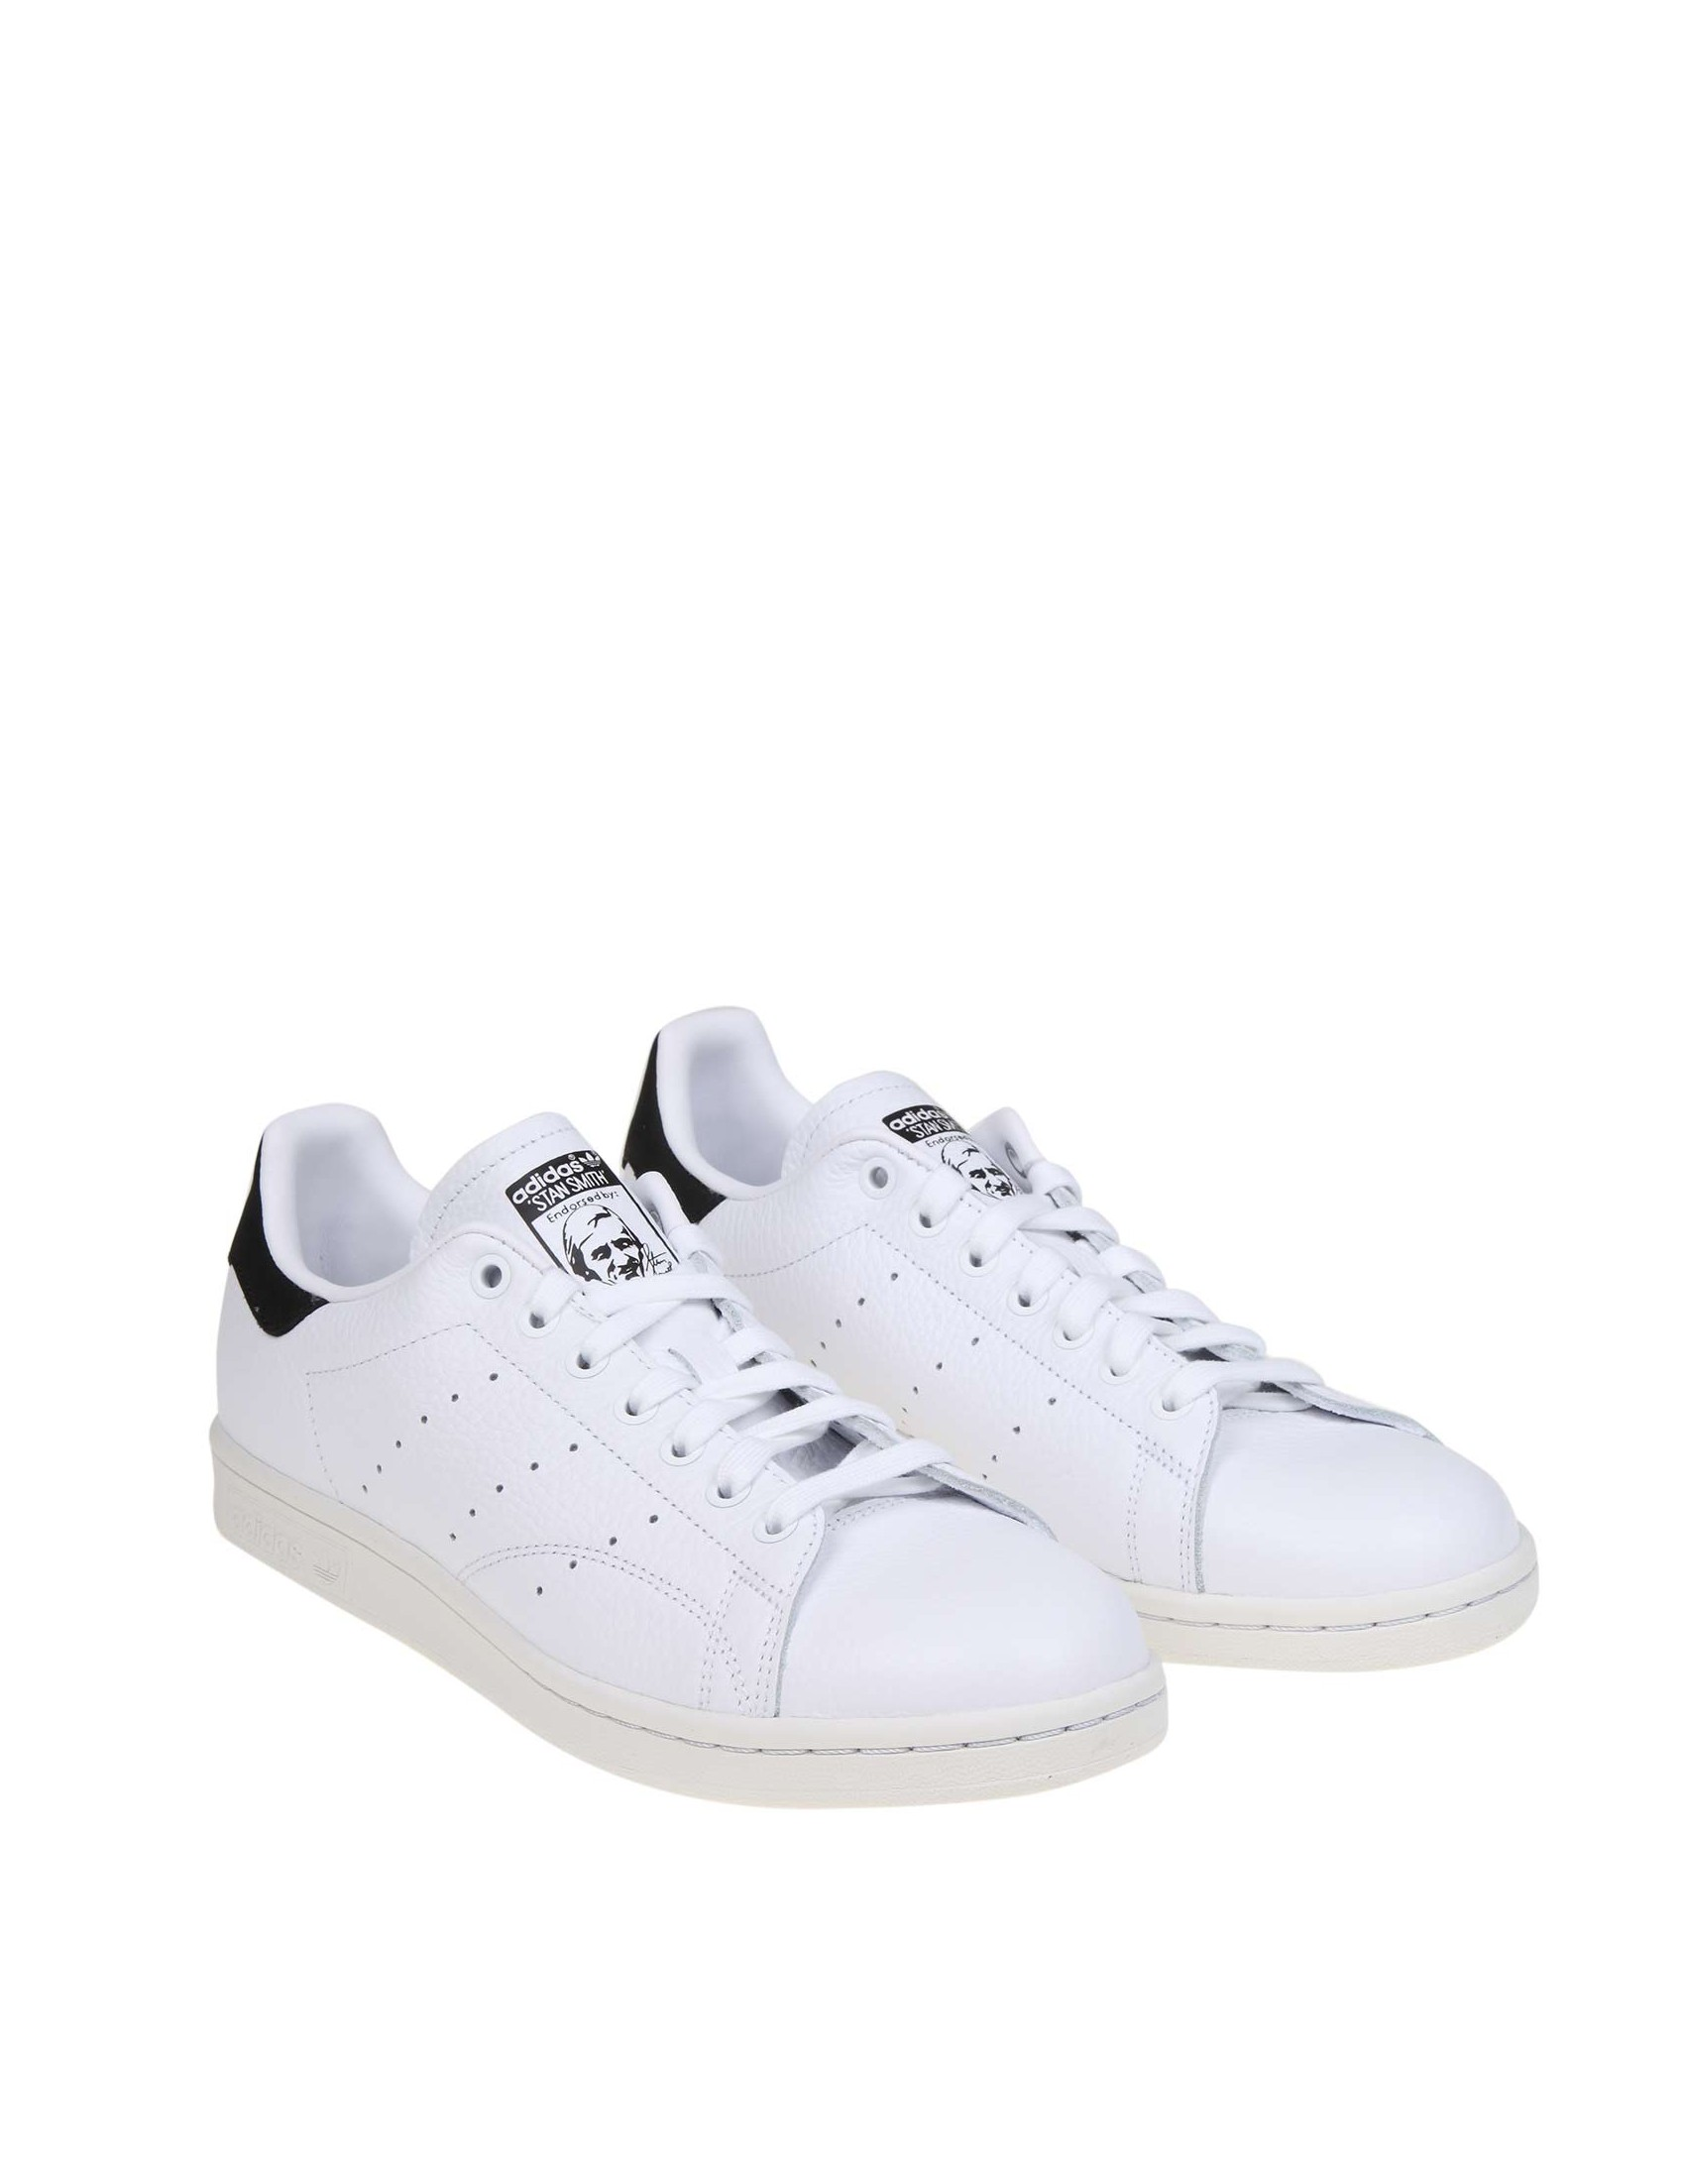 cb00894a5c1a ADIDAS ORIGINALS SNEAKERS man STAN SMITH WHITE LEATHER NEW ARRIVALS